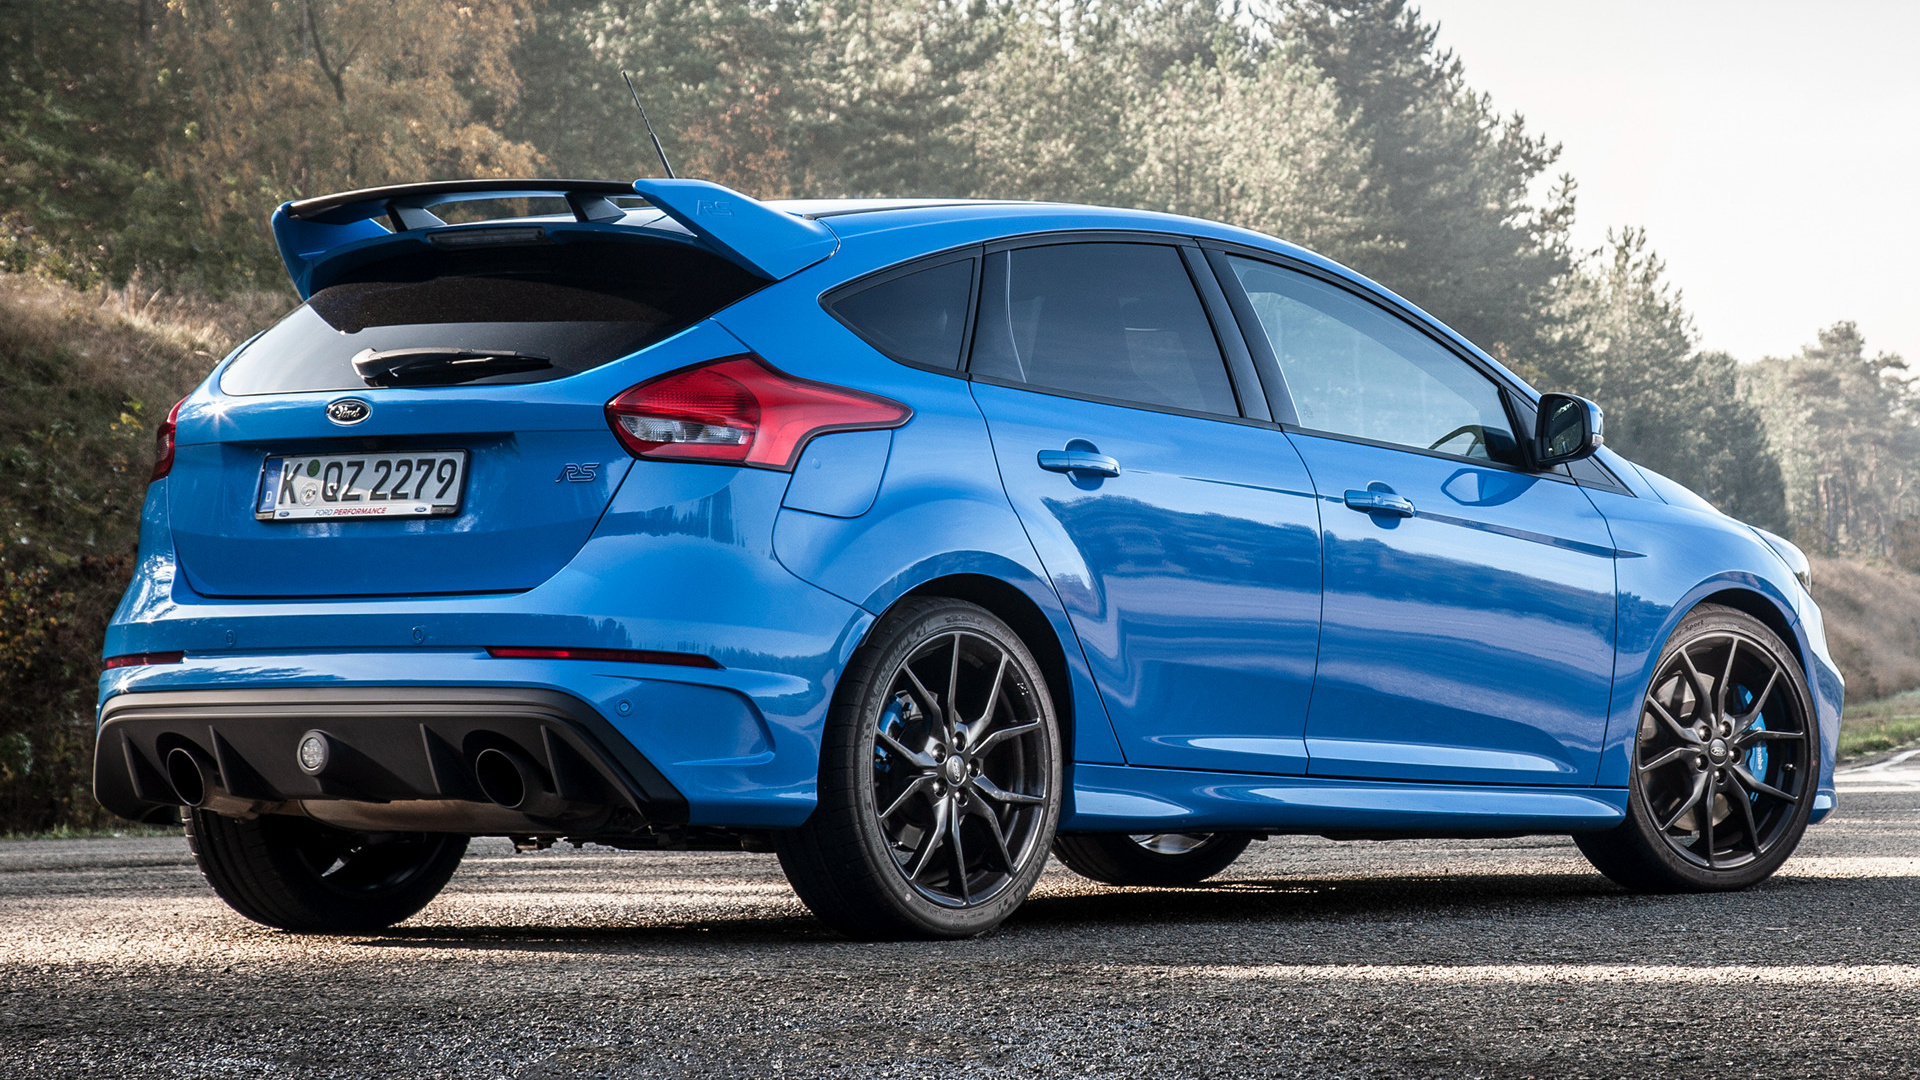 Ford Focus Rs Wallpaper Hd